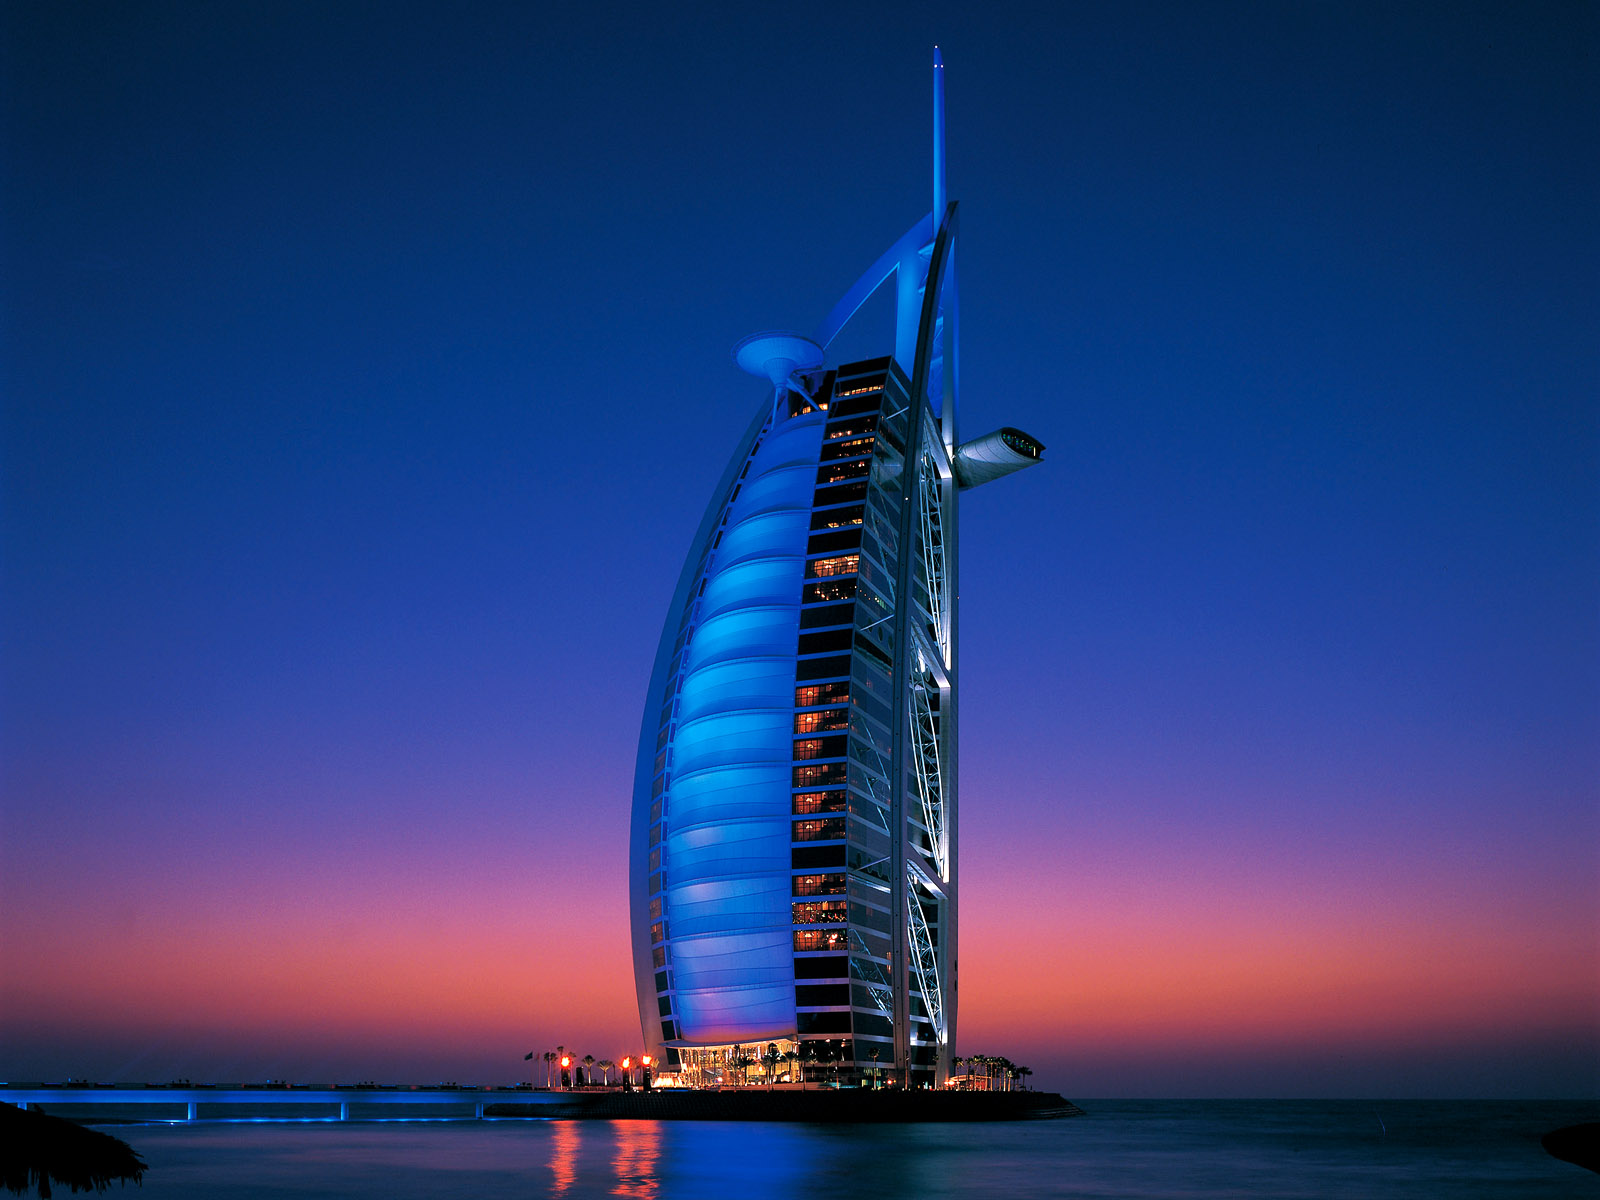 Burj Al Arab Dubai, Burj Al Arab Dubai UAE Wallpapers | HD Wallpapers